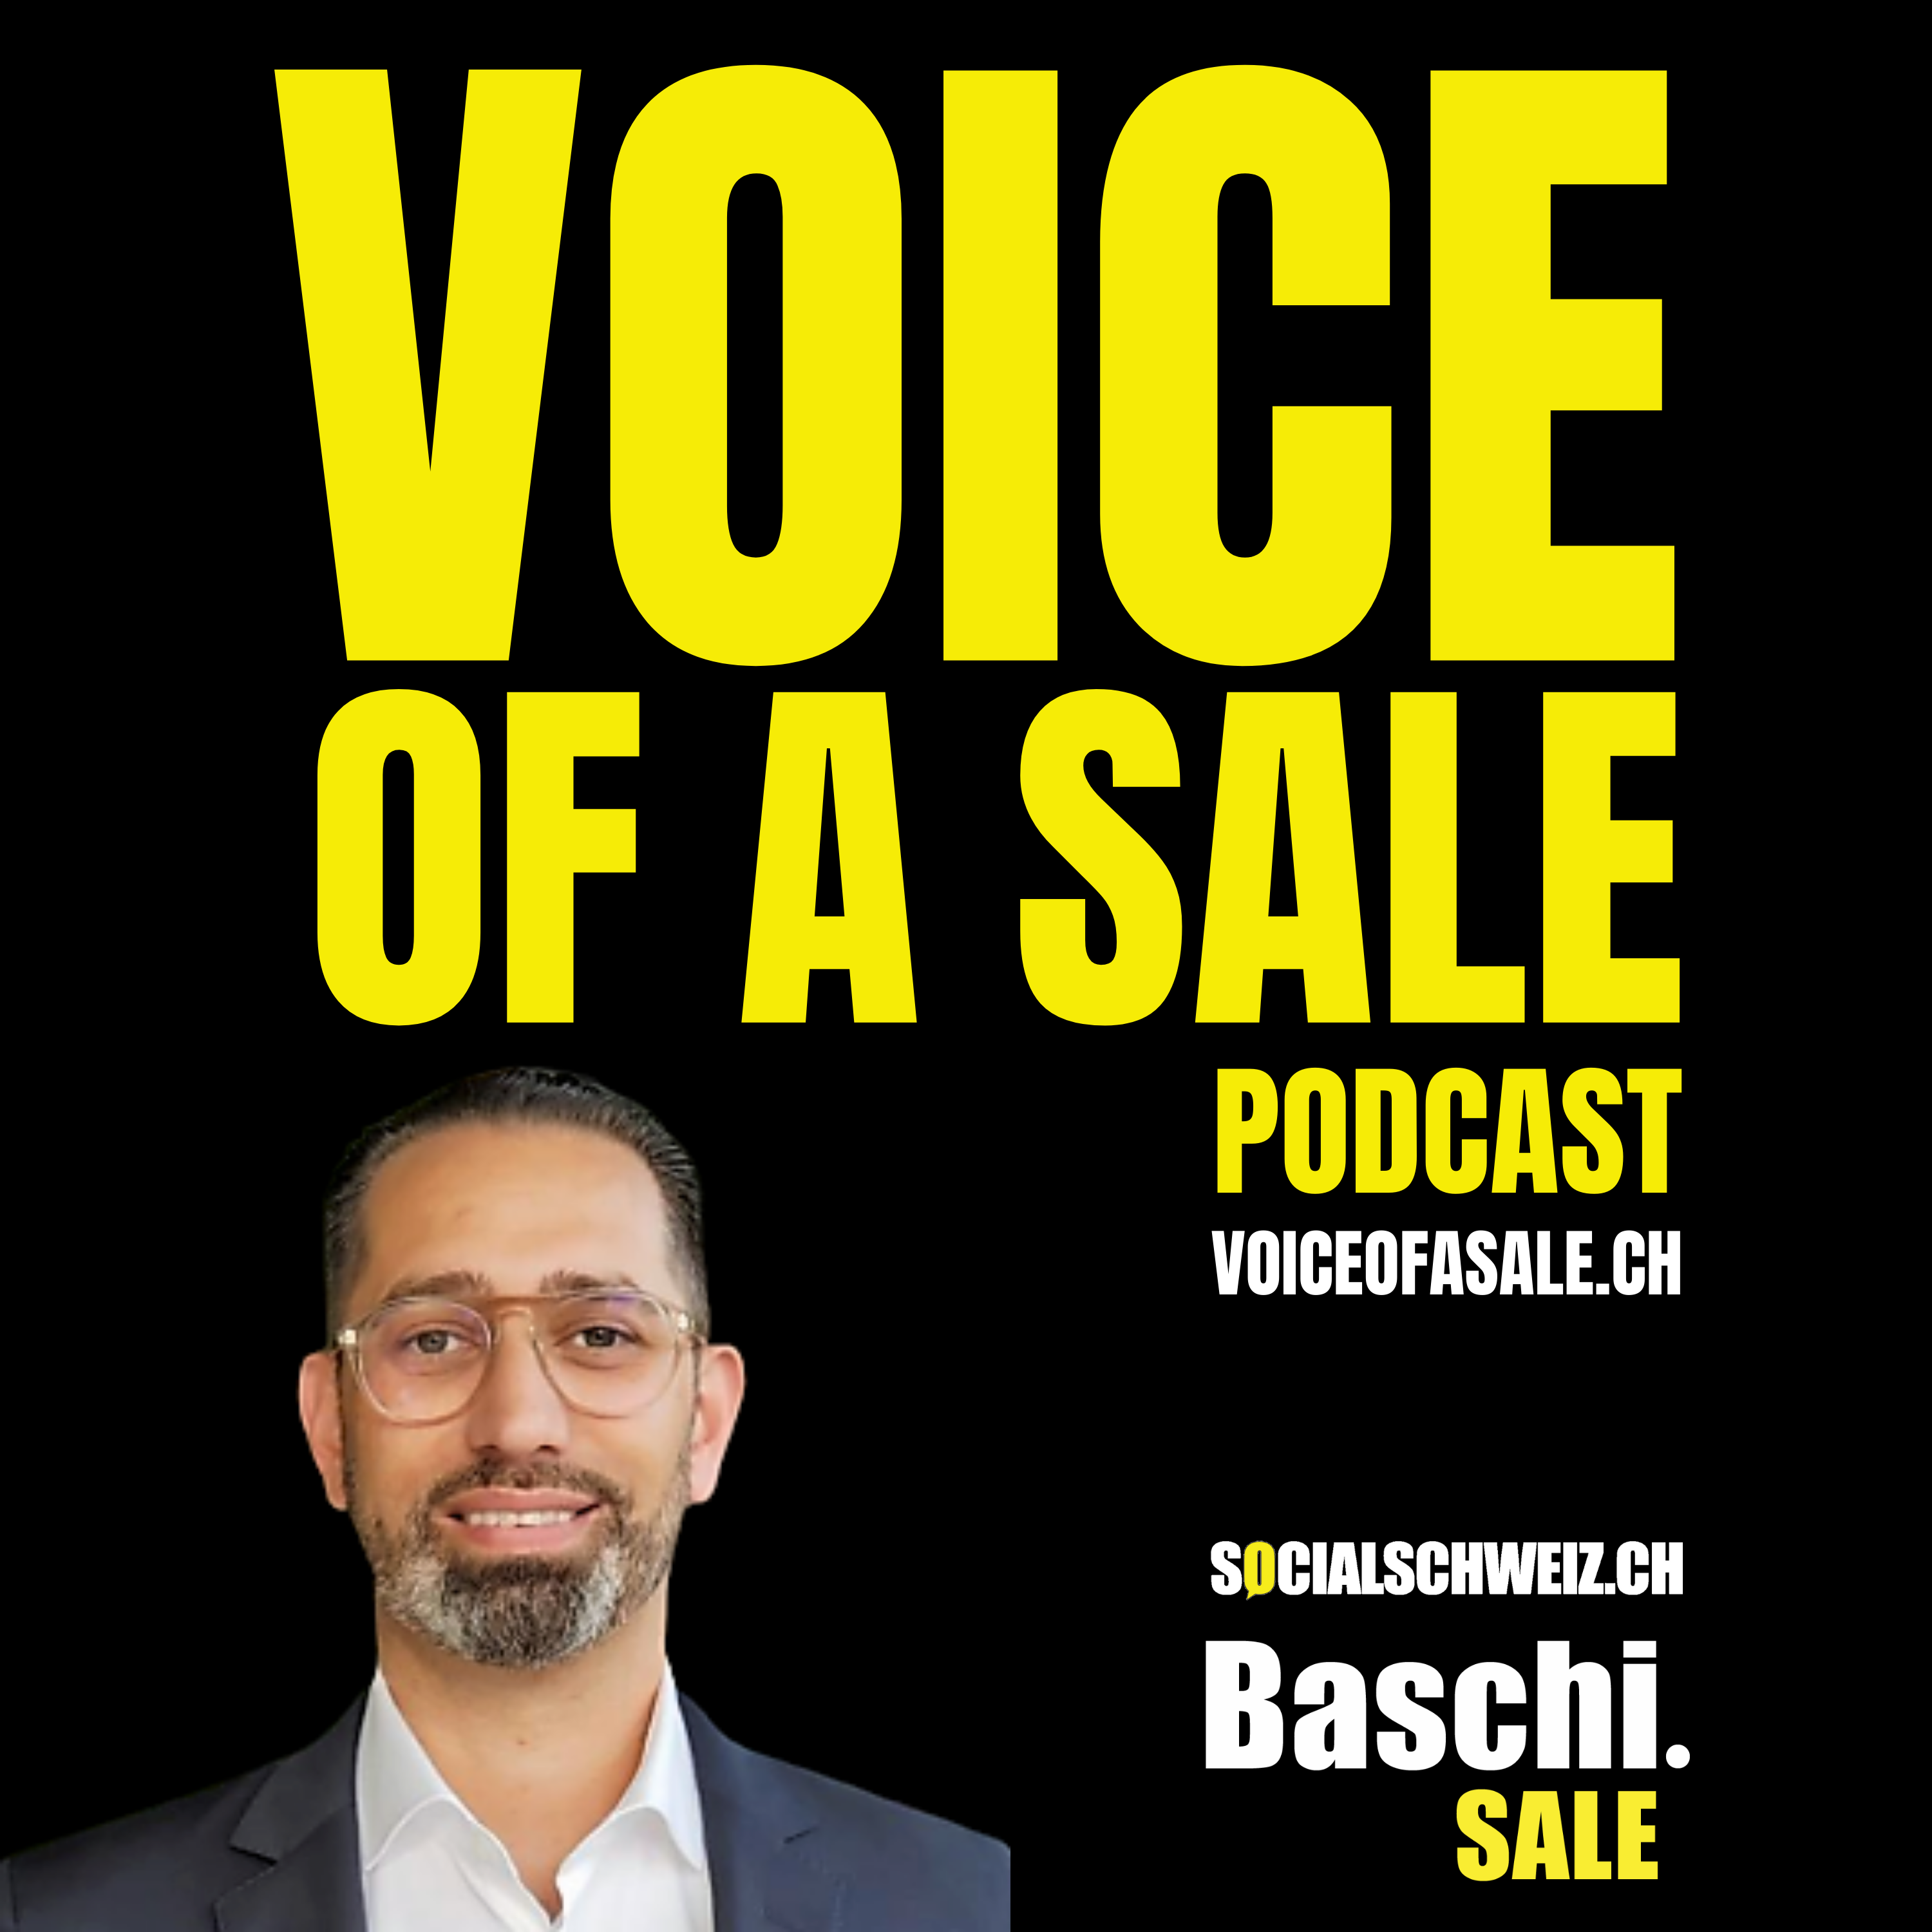 VOICE OF A SALE - Podcast Baschi Sale